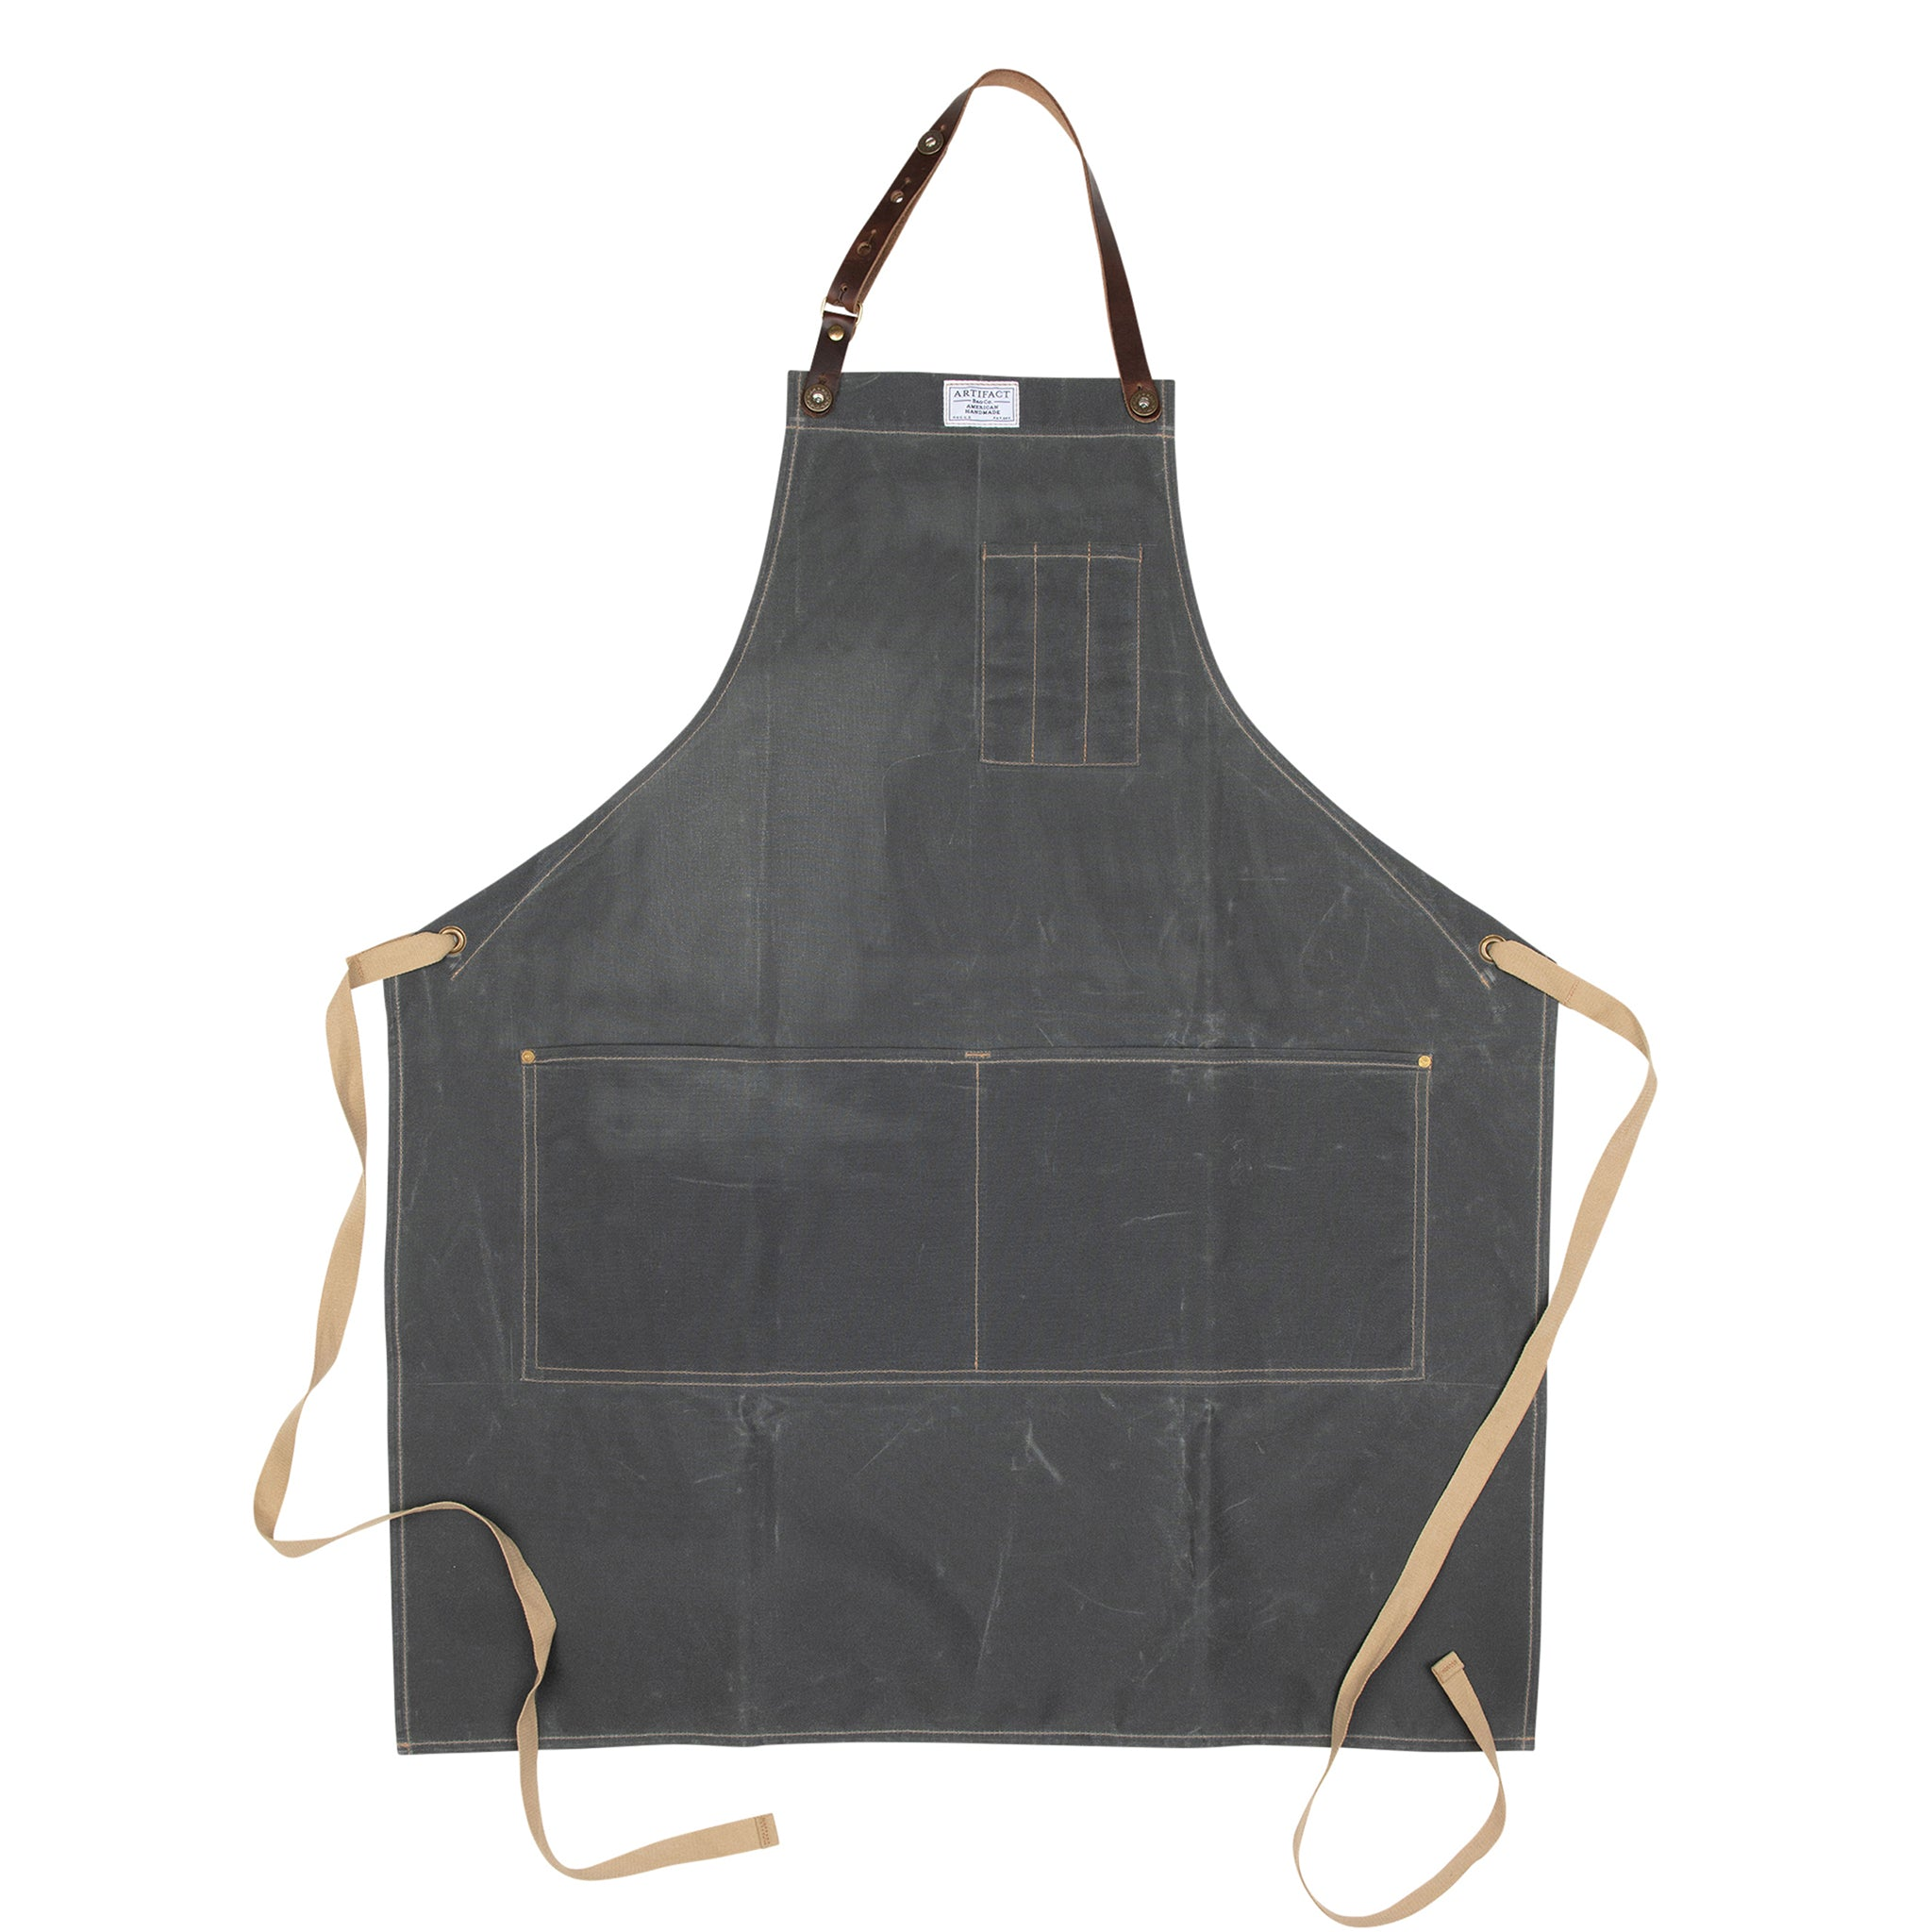 Artifact Bosc Pear Wax Cotton Apron w/ Leather Strap - Universal Fit